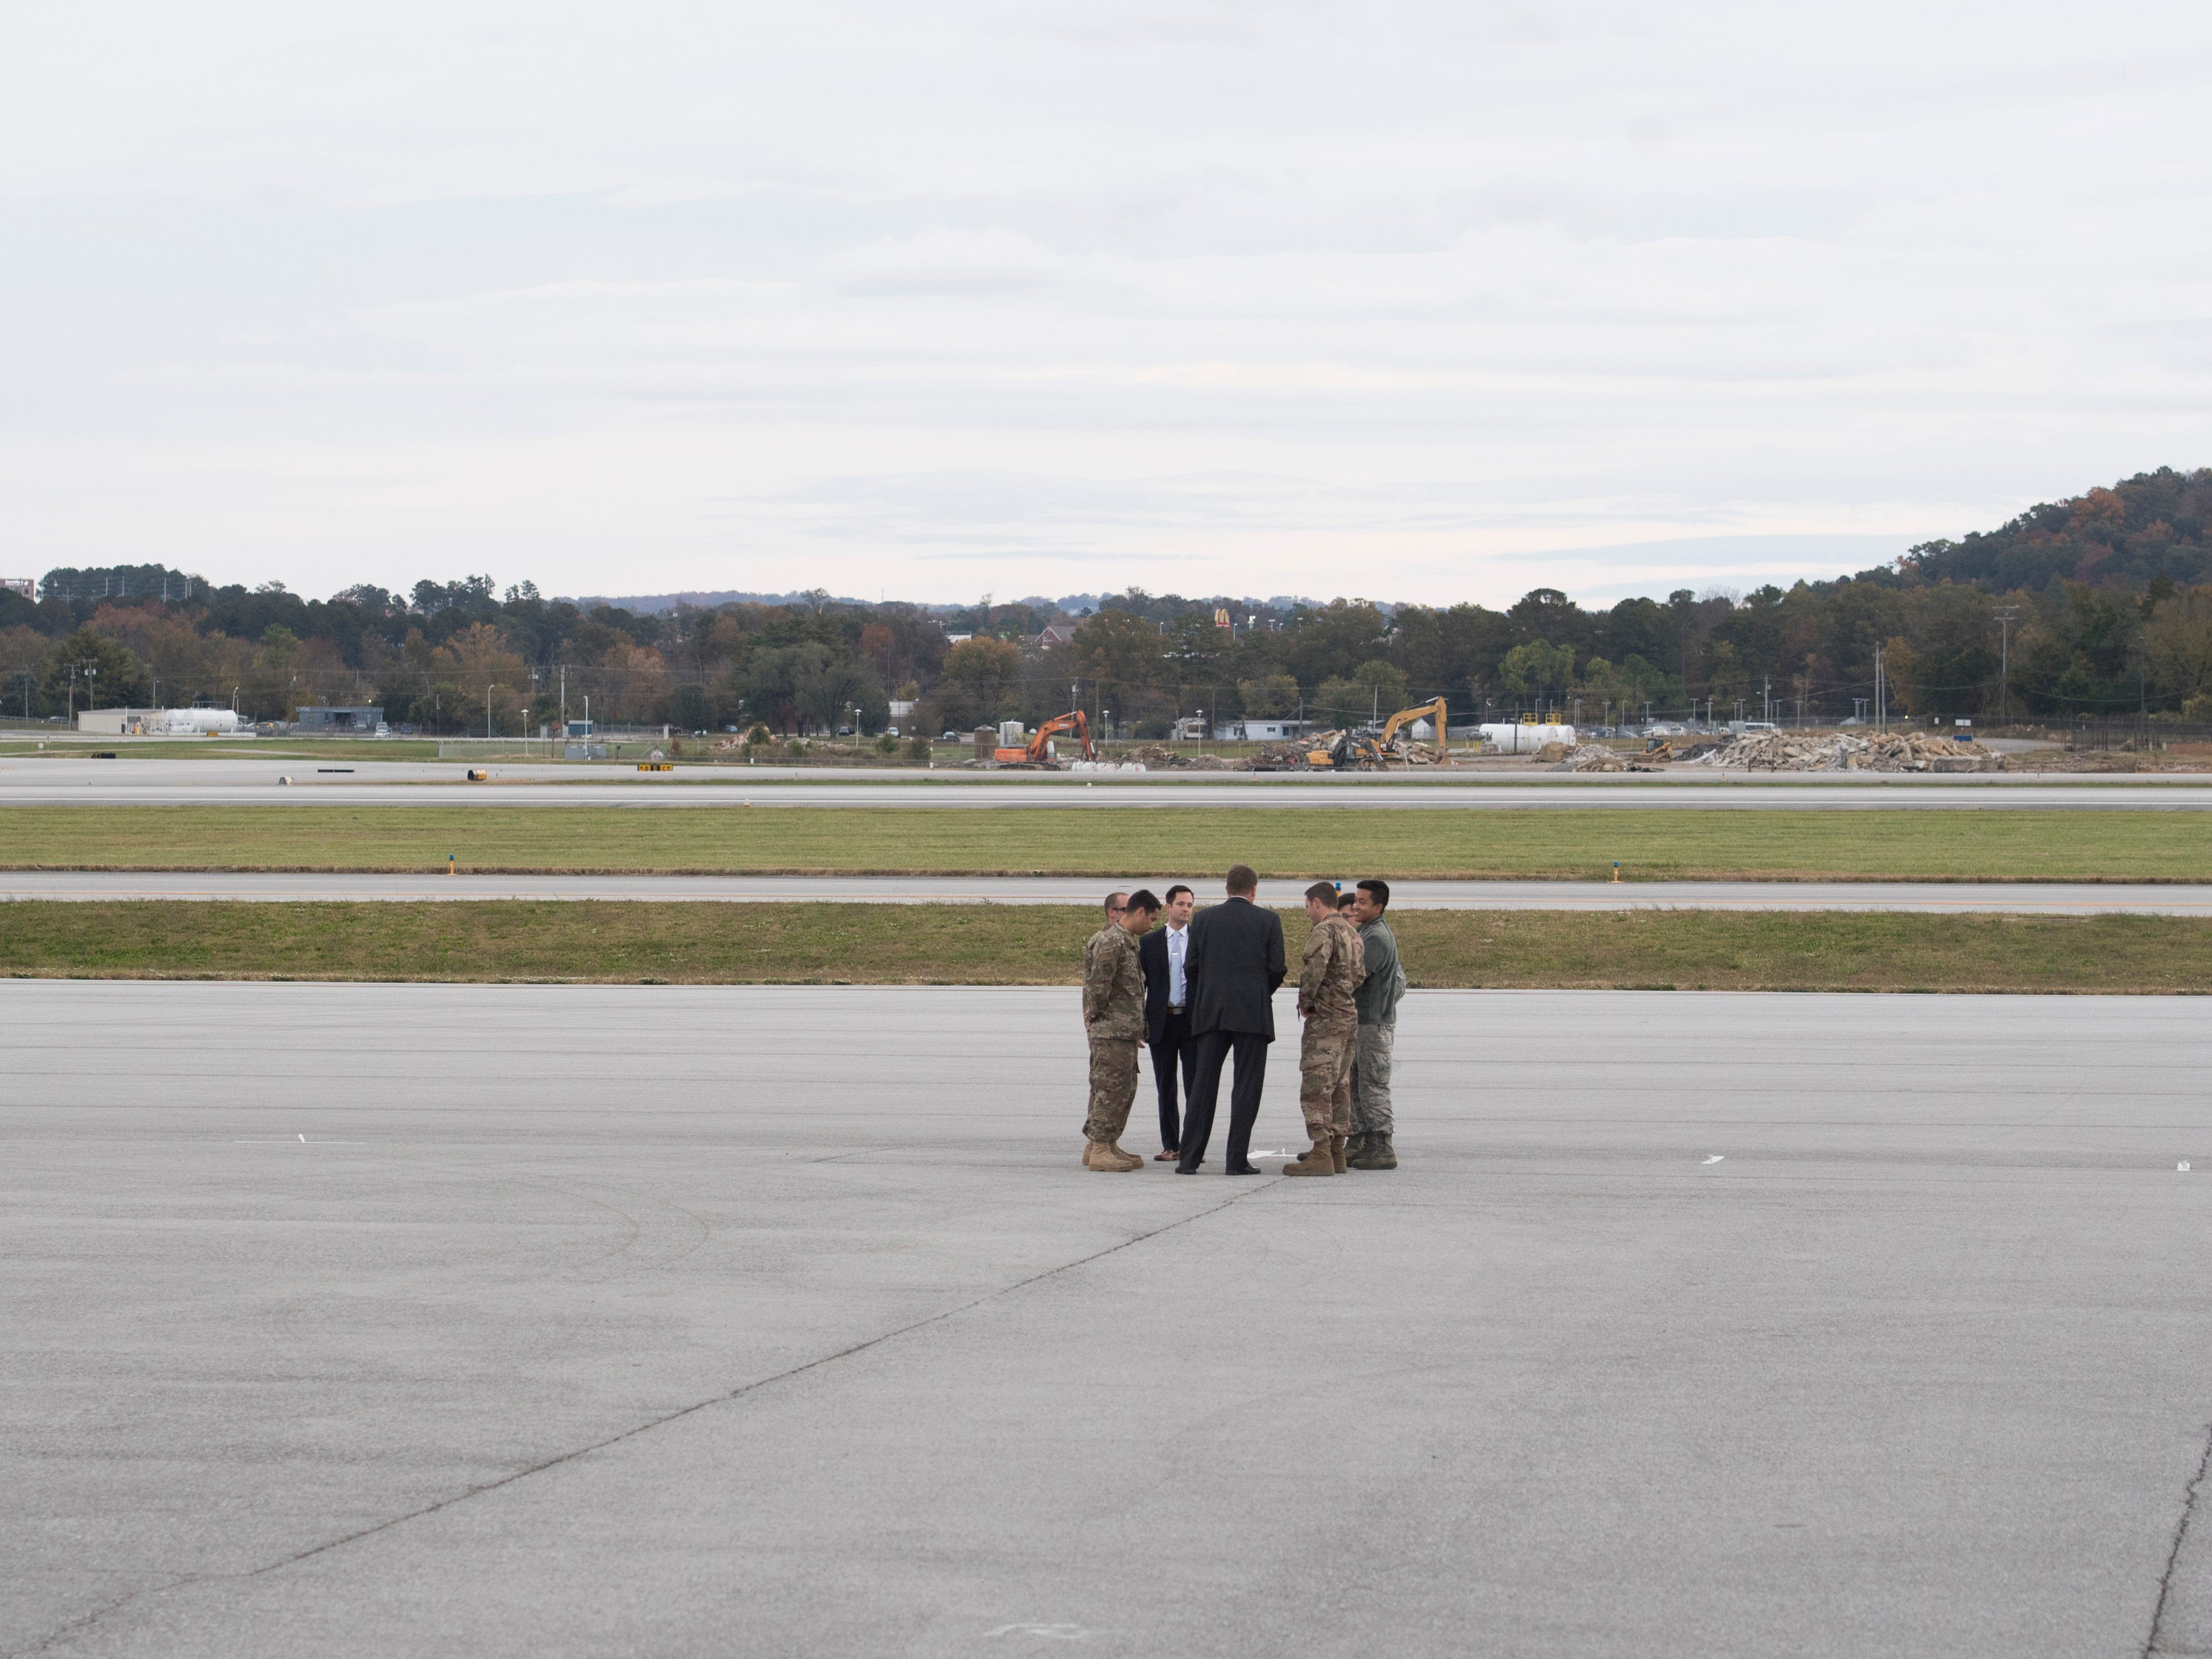 President Donald Trump's security detail on the tarmac at  the Wilson Air Center at the Chattanooga Metropolitan Airport on Sunday, November 4, 2018.